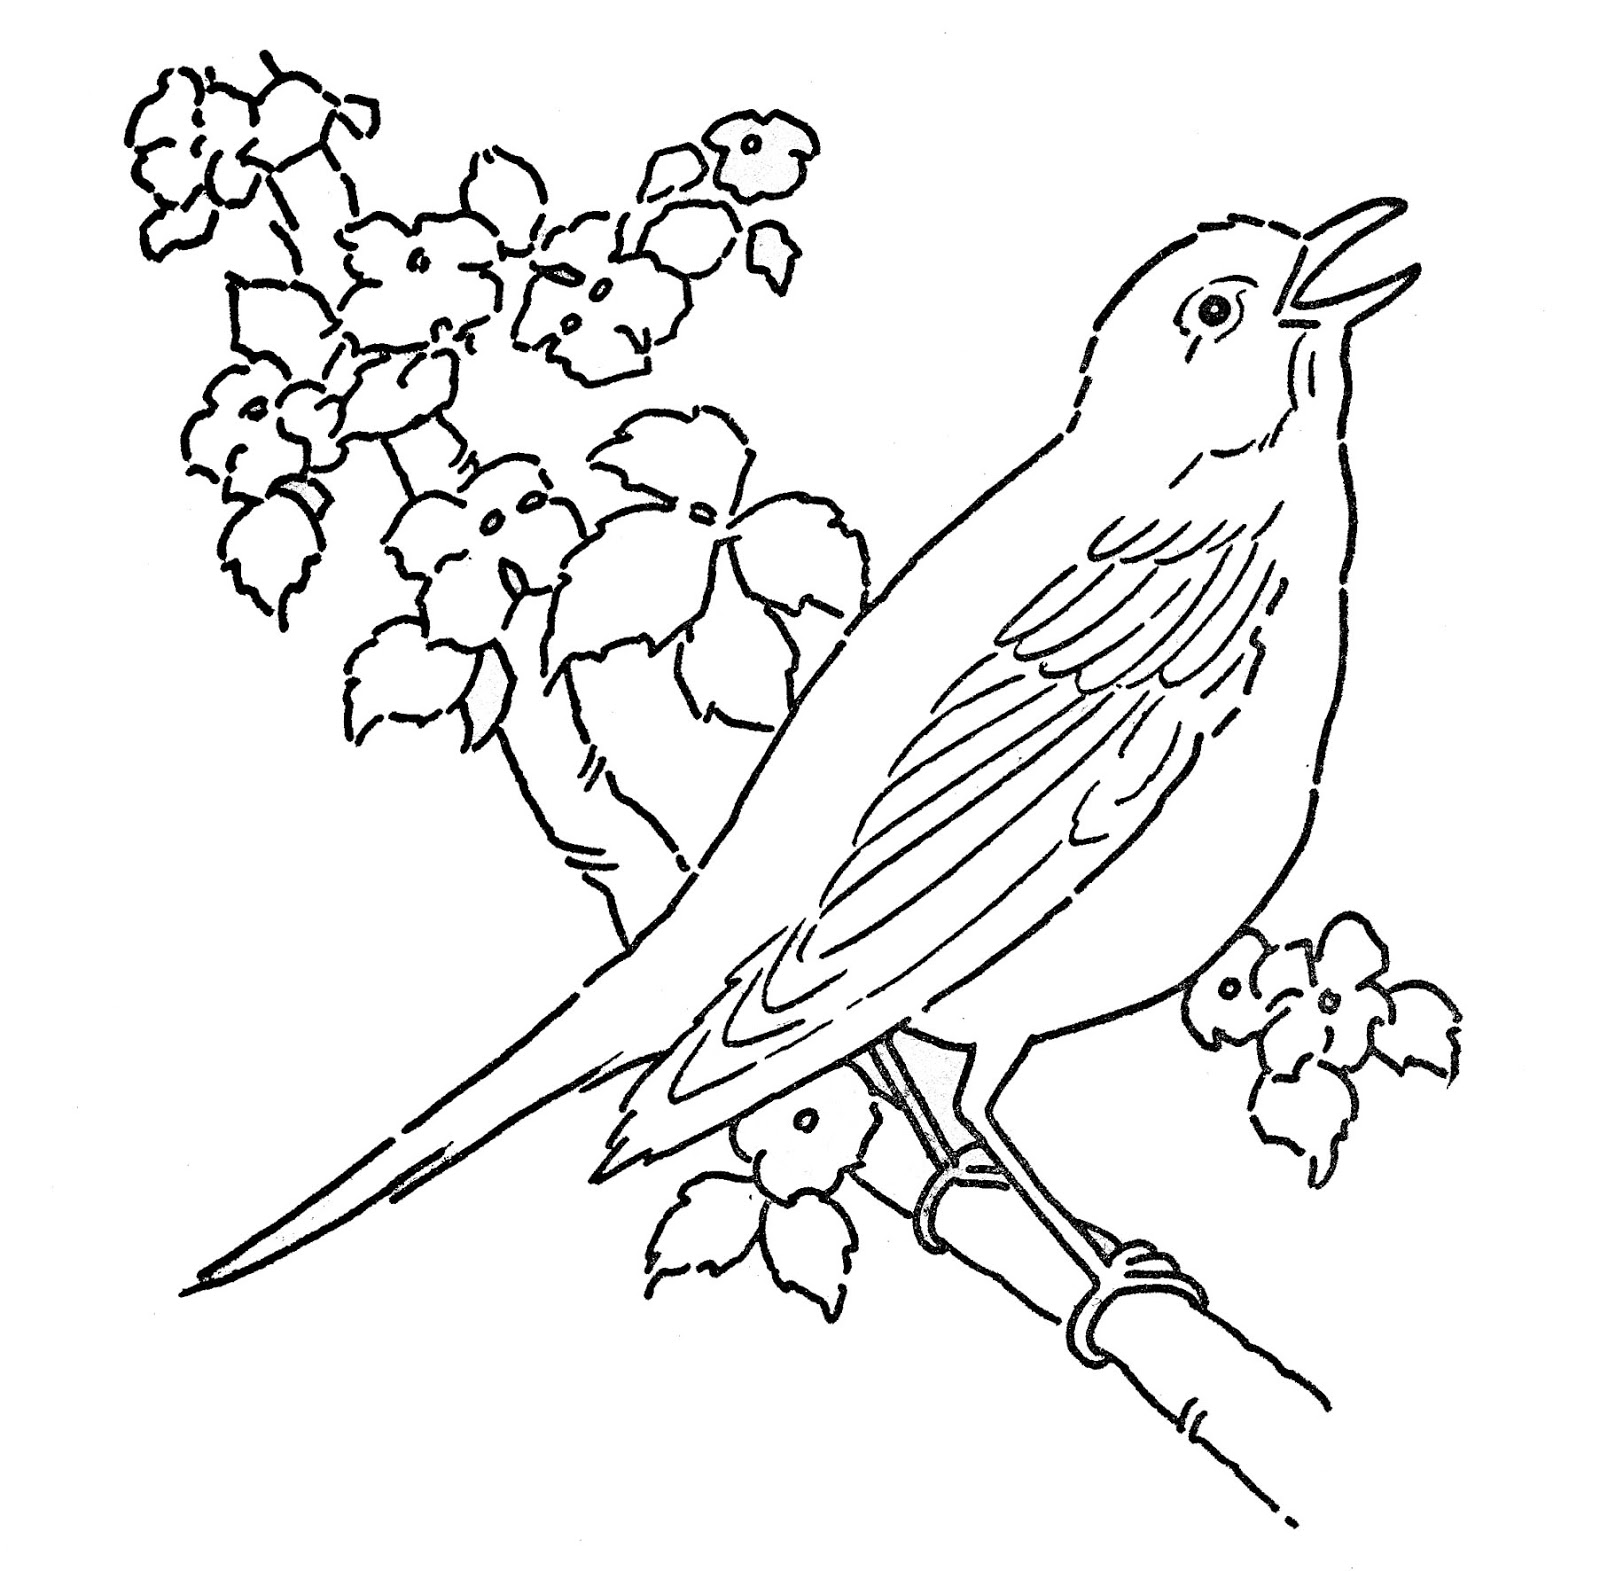 Coloring Sheets for Kids Flying Bird Coloring Page  Bird